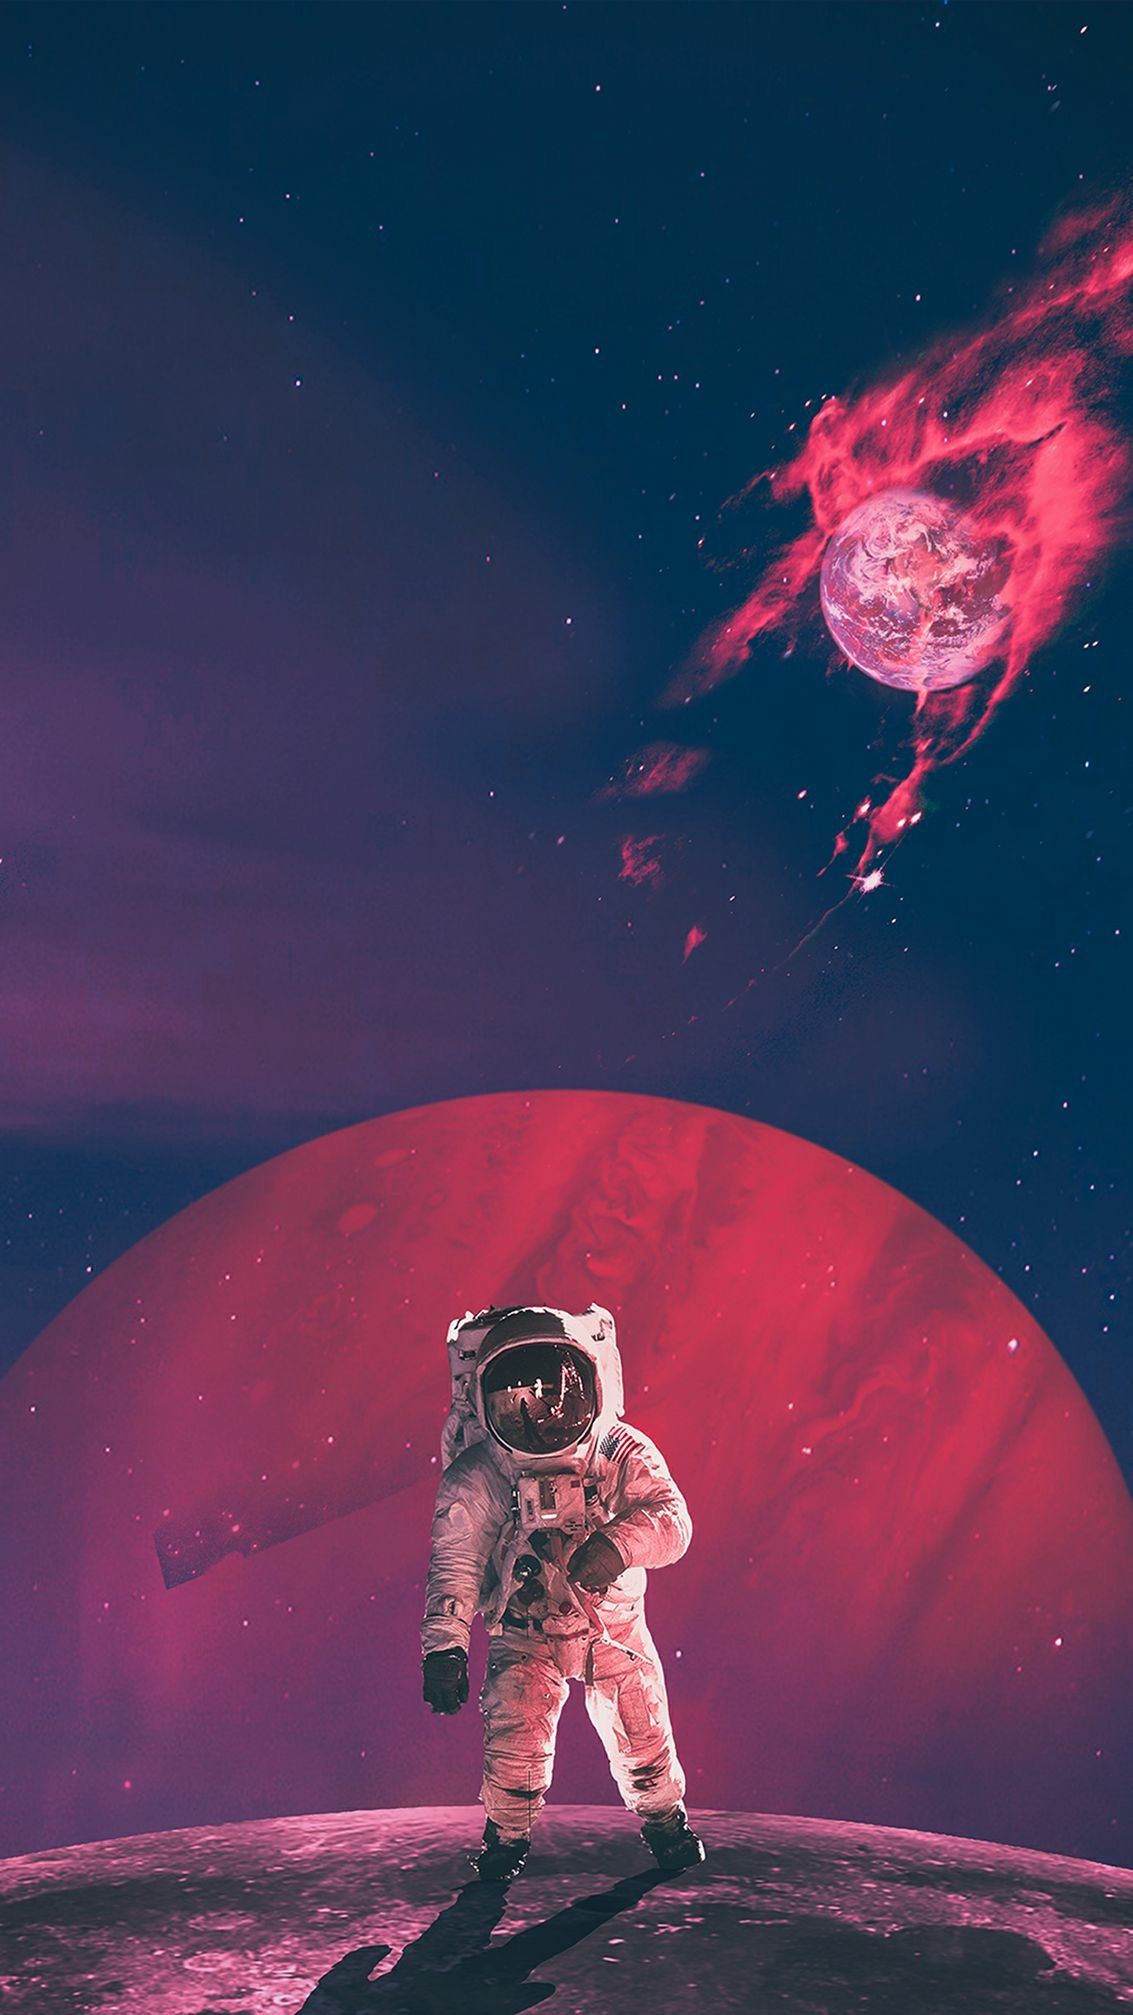 Pin by Ashley Castillo on Trending Space iphone wallpaper 1133x2015